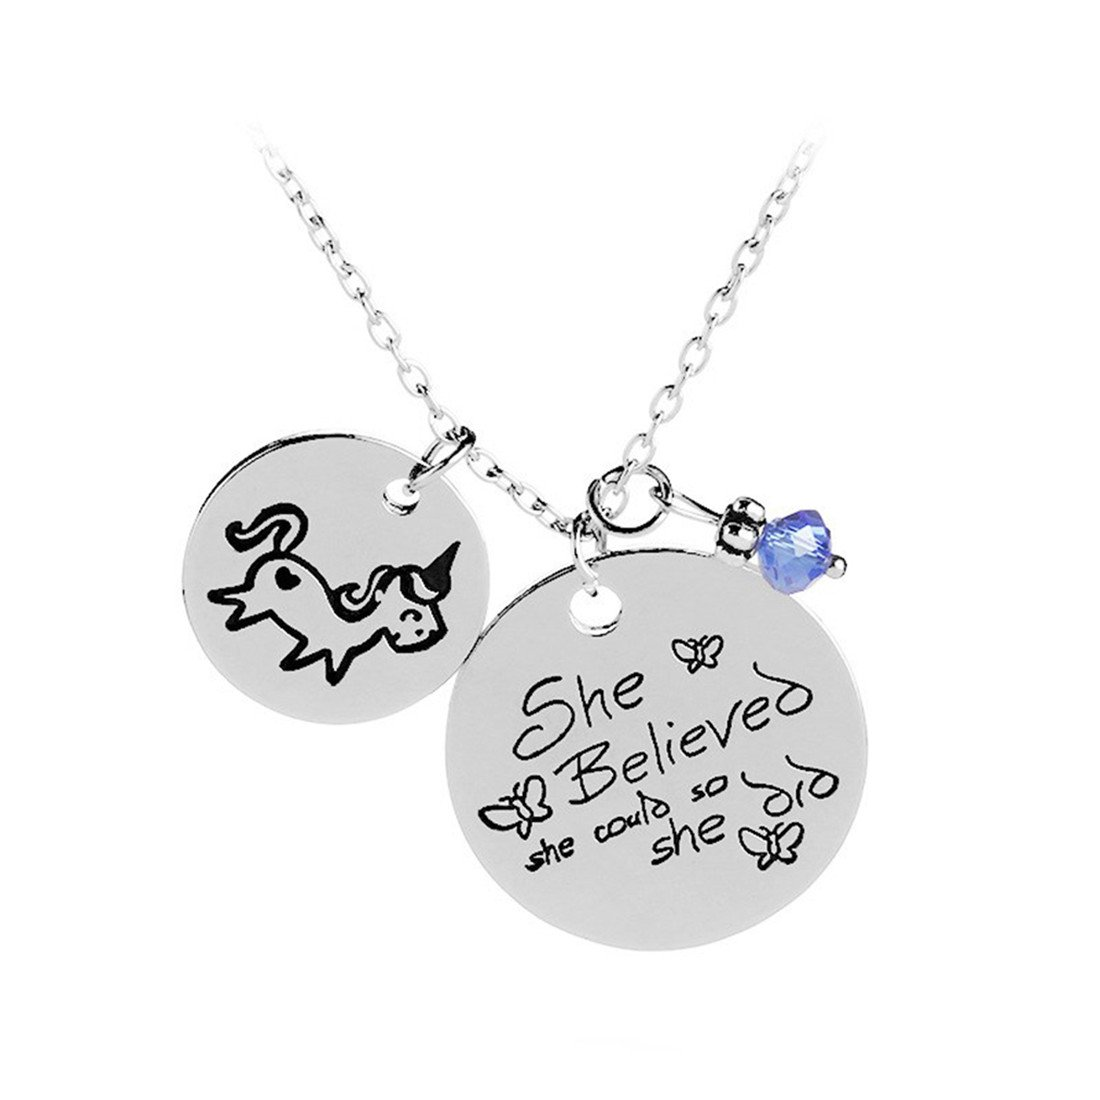 VWH Unicorn Necklace Pendant Charms Chain for Females Gifts She Believed She Could So She Did Unicorn Necklace Yingwei